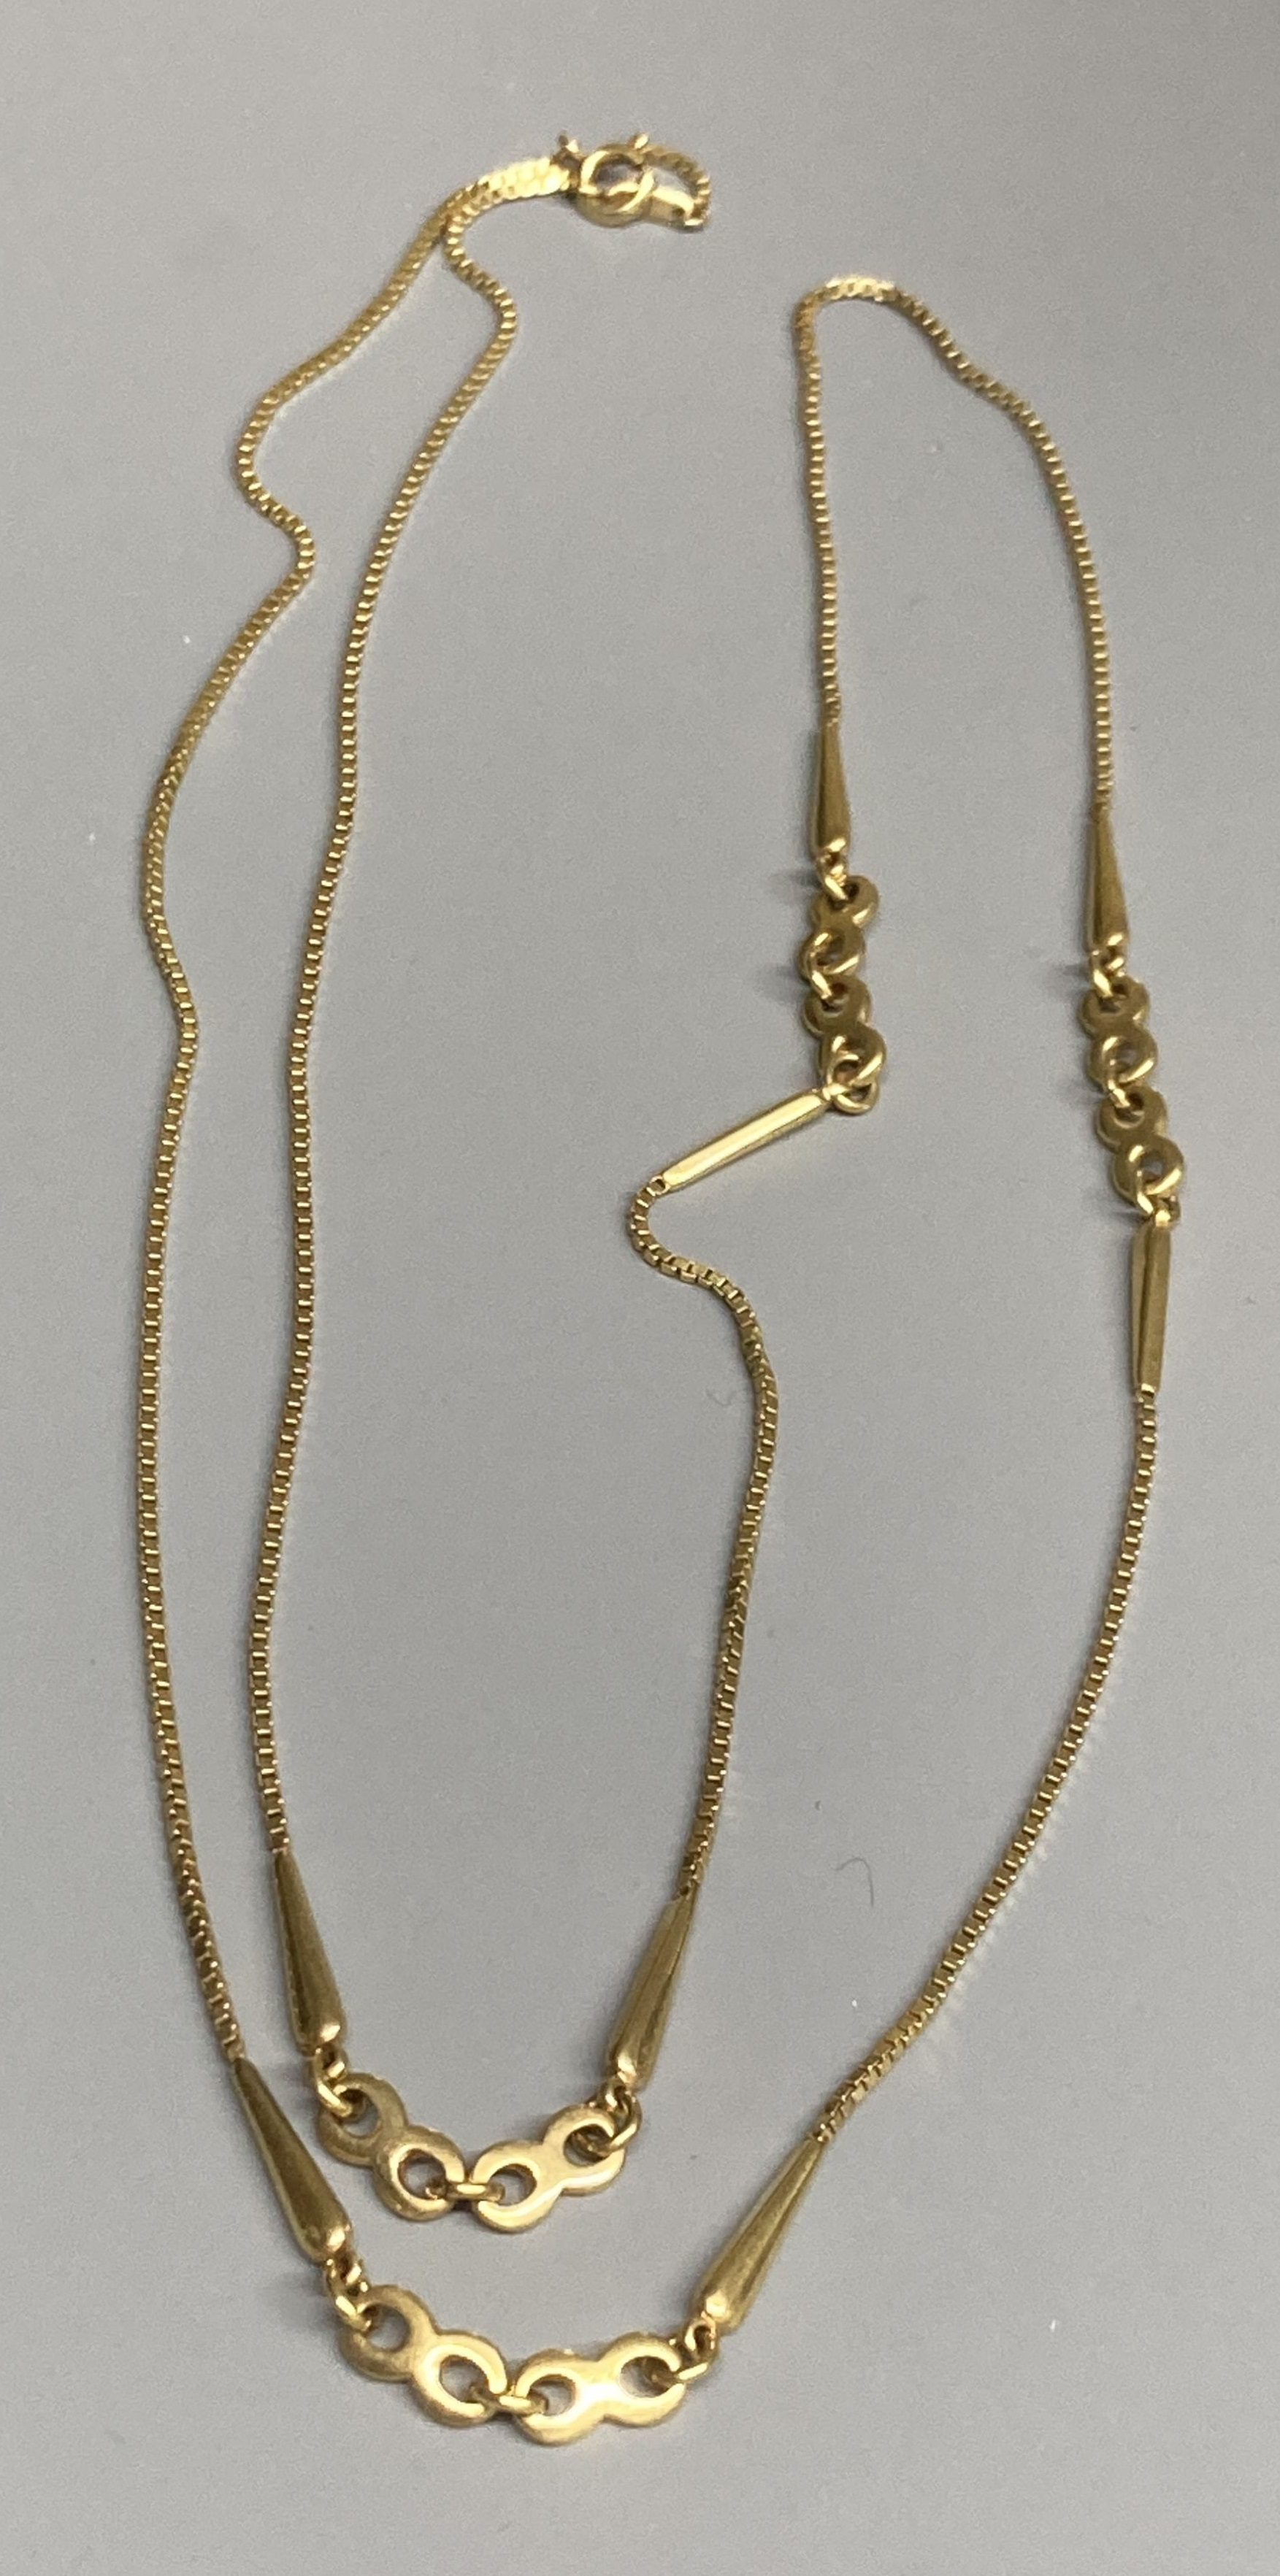 A modern 9ct gold fine link chain with intermittent circular and teardrop shaped links, 78cm,12.1